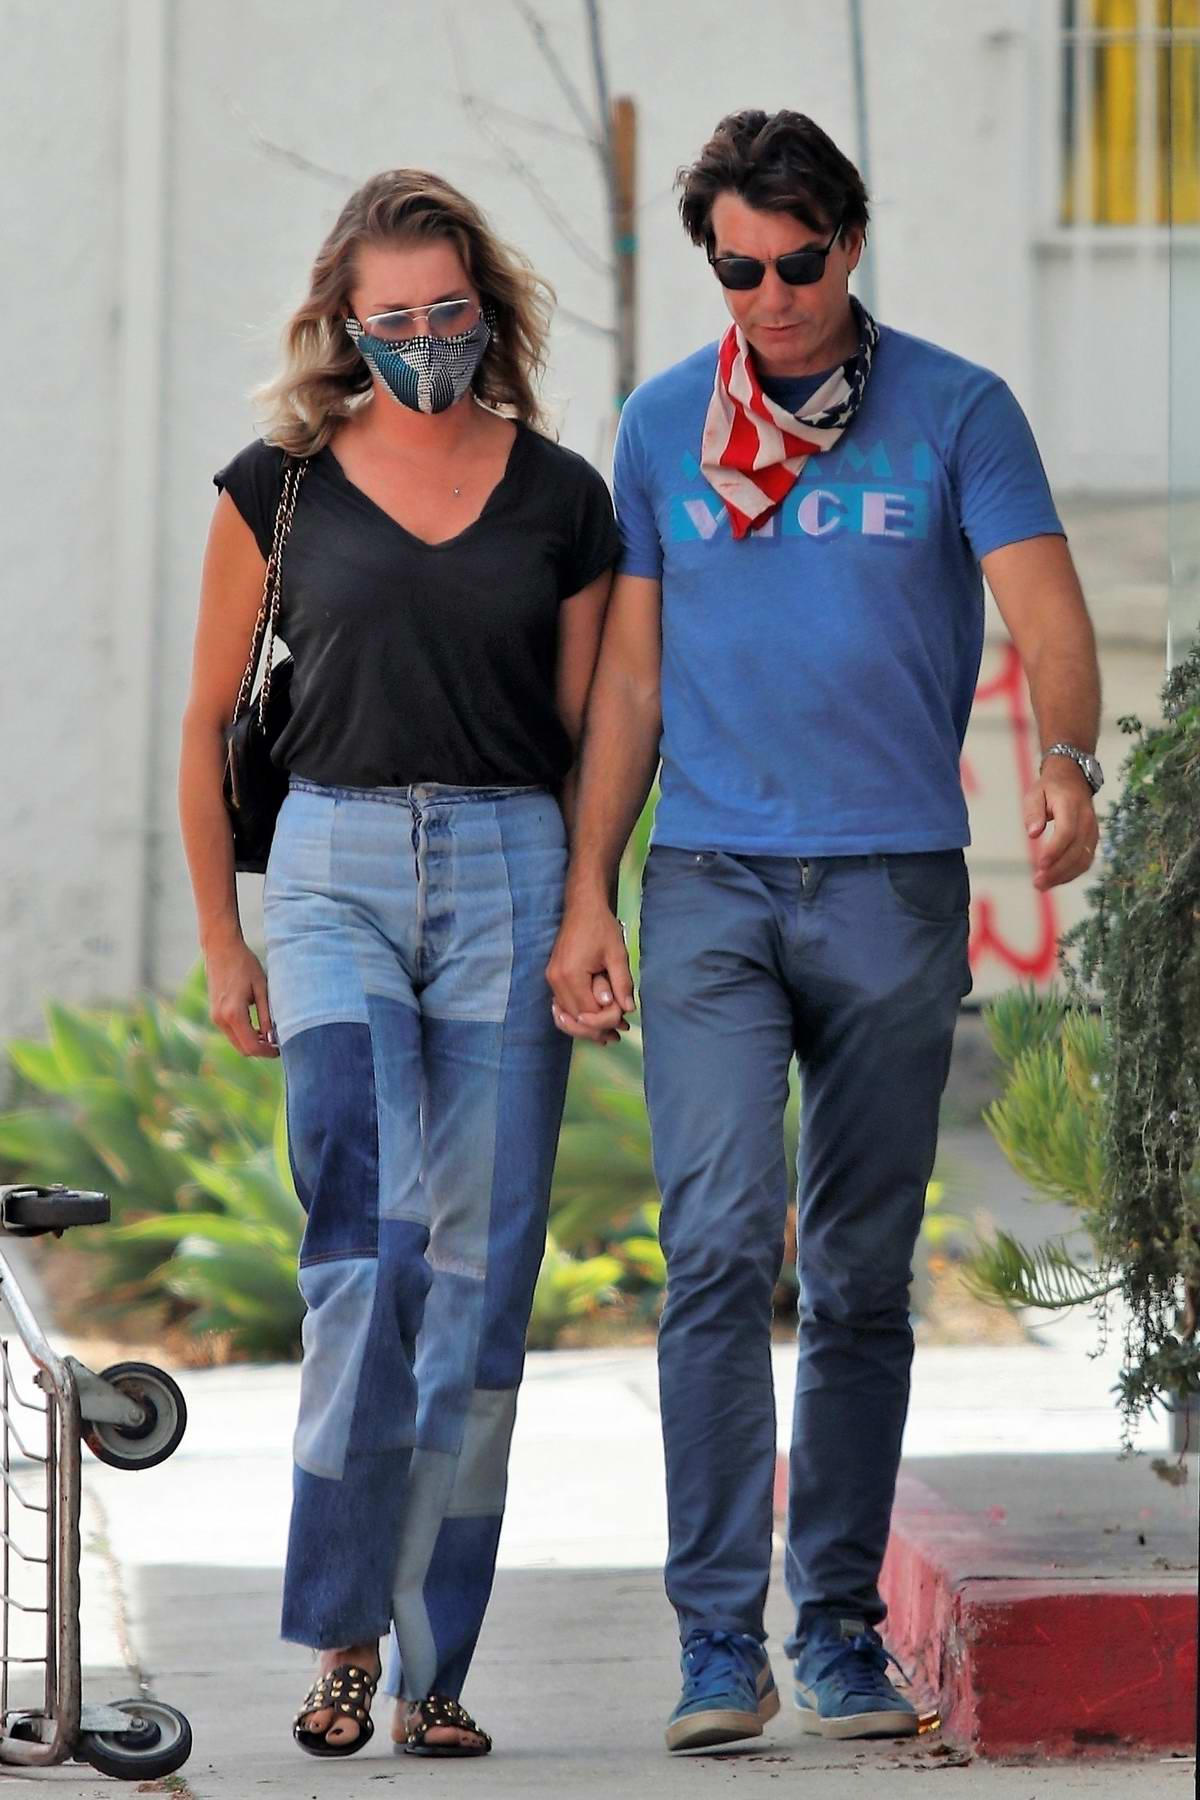 Rebecca Romijn and Jerry O'Connel step out for a lunch date in Los Angeles